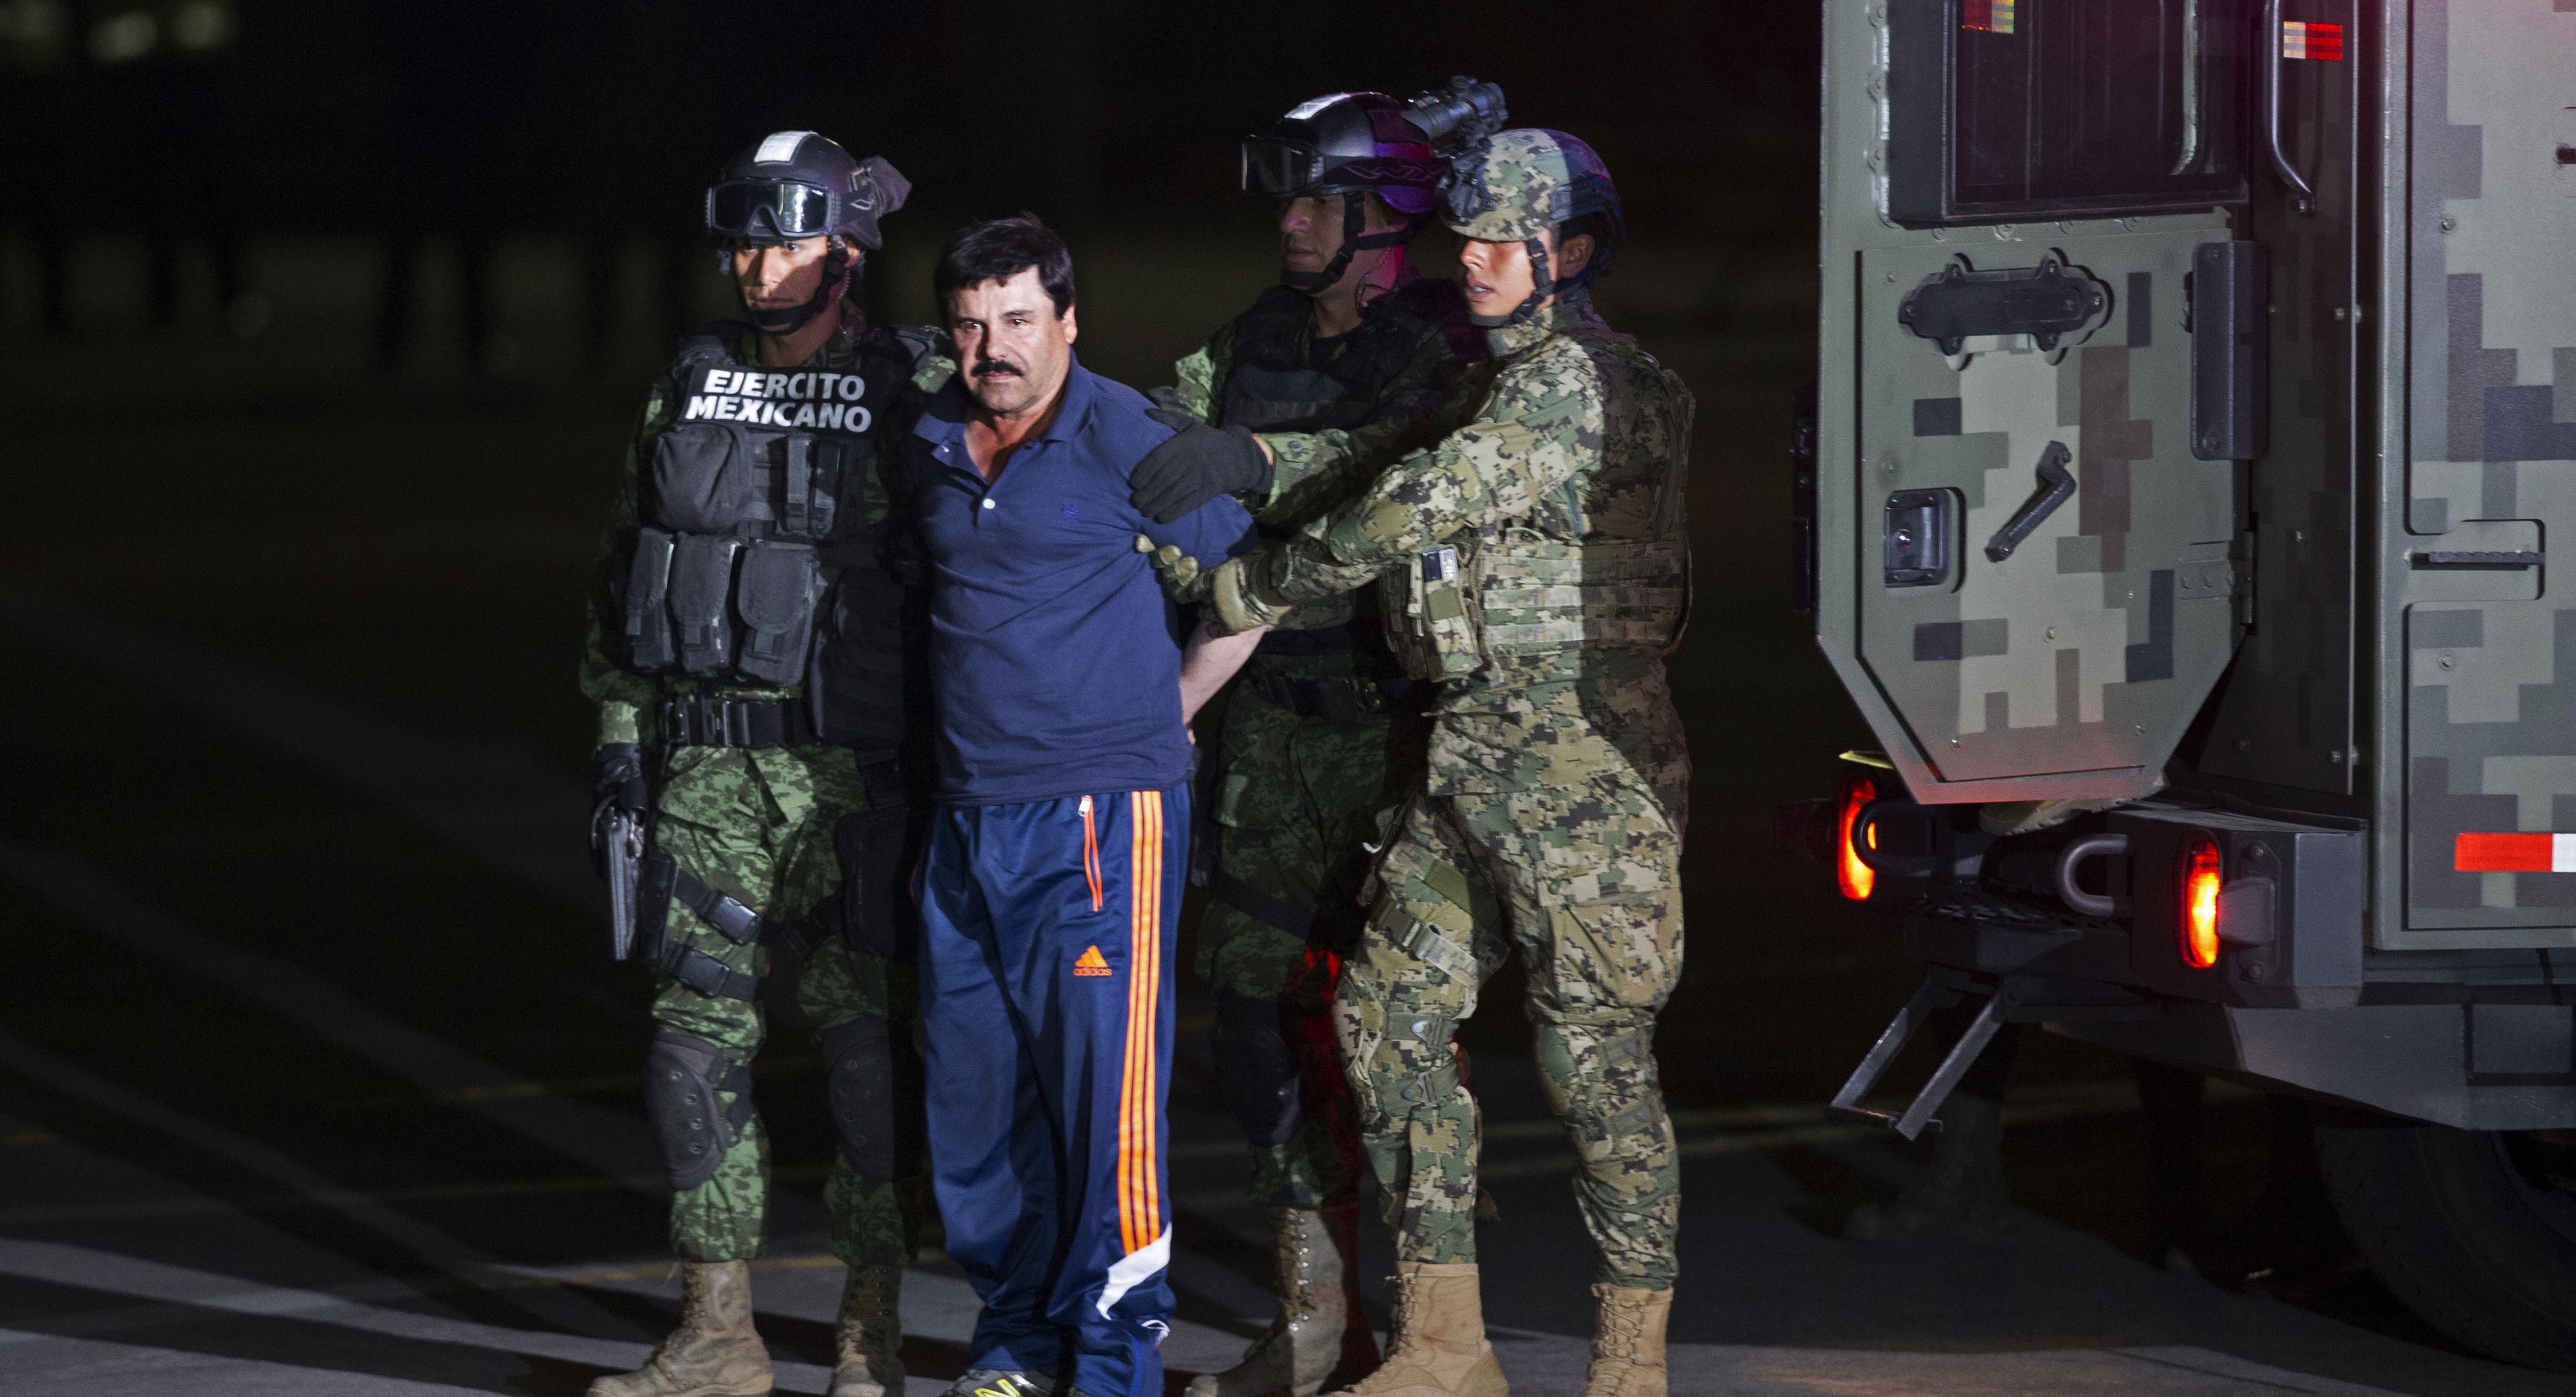 Mexican drug lord El Chapo lands in New York to face